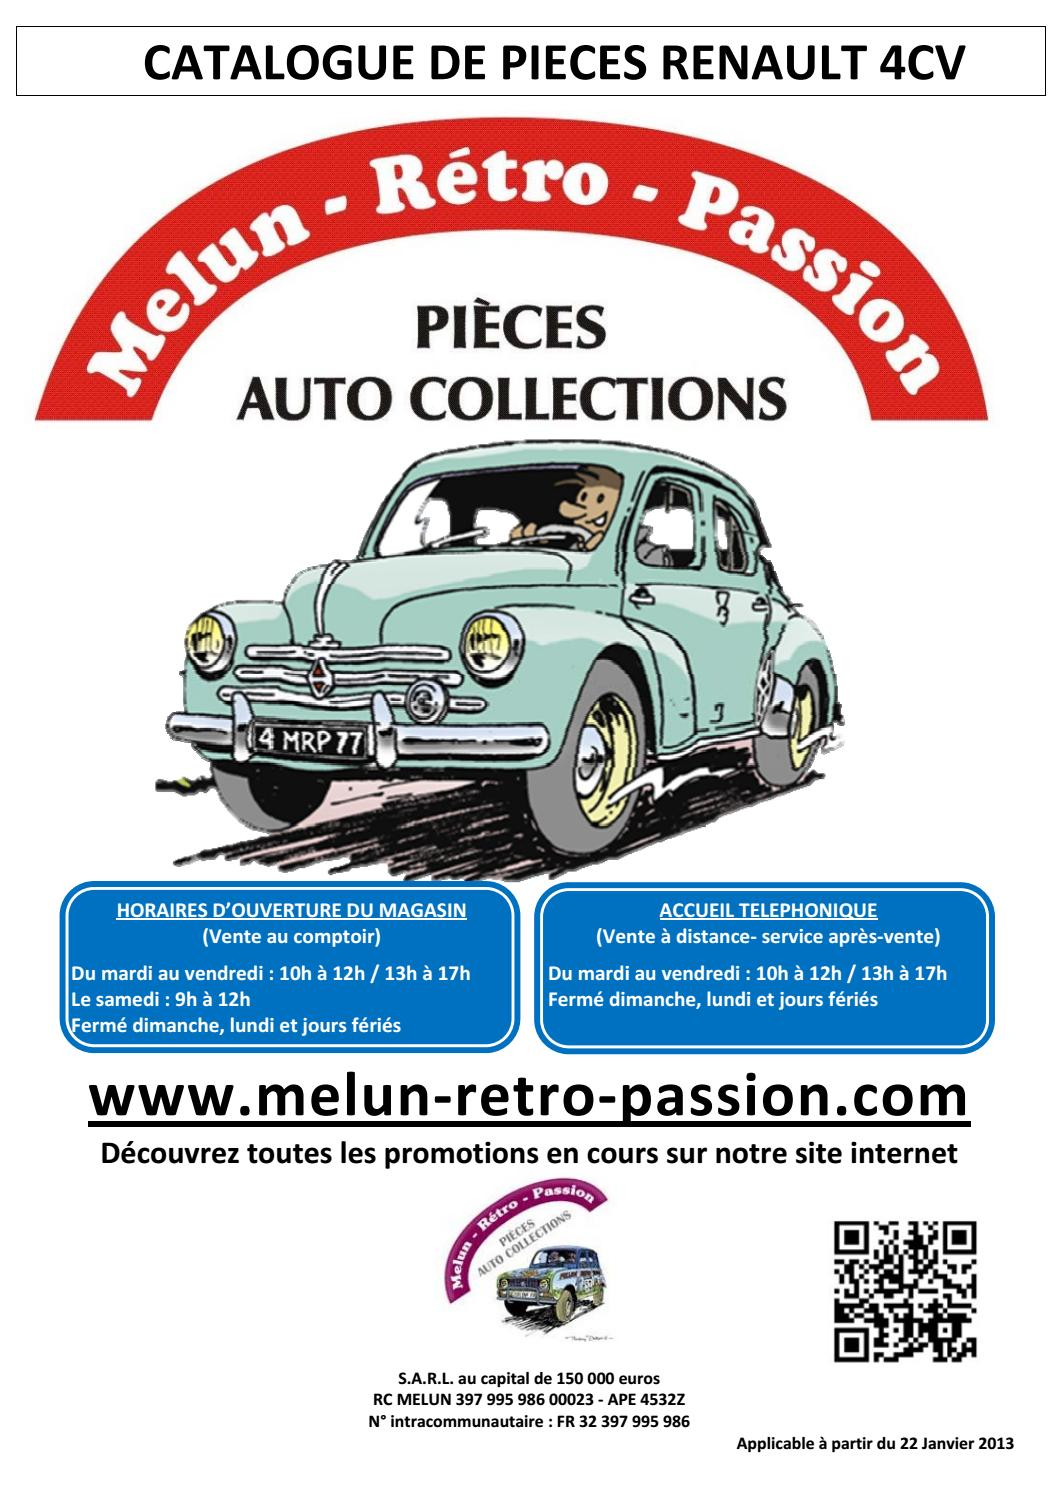 Catalogue Pieces Renault 4cv By Melun Retro Passion Issuu